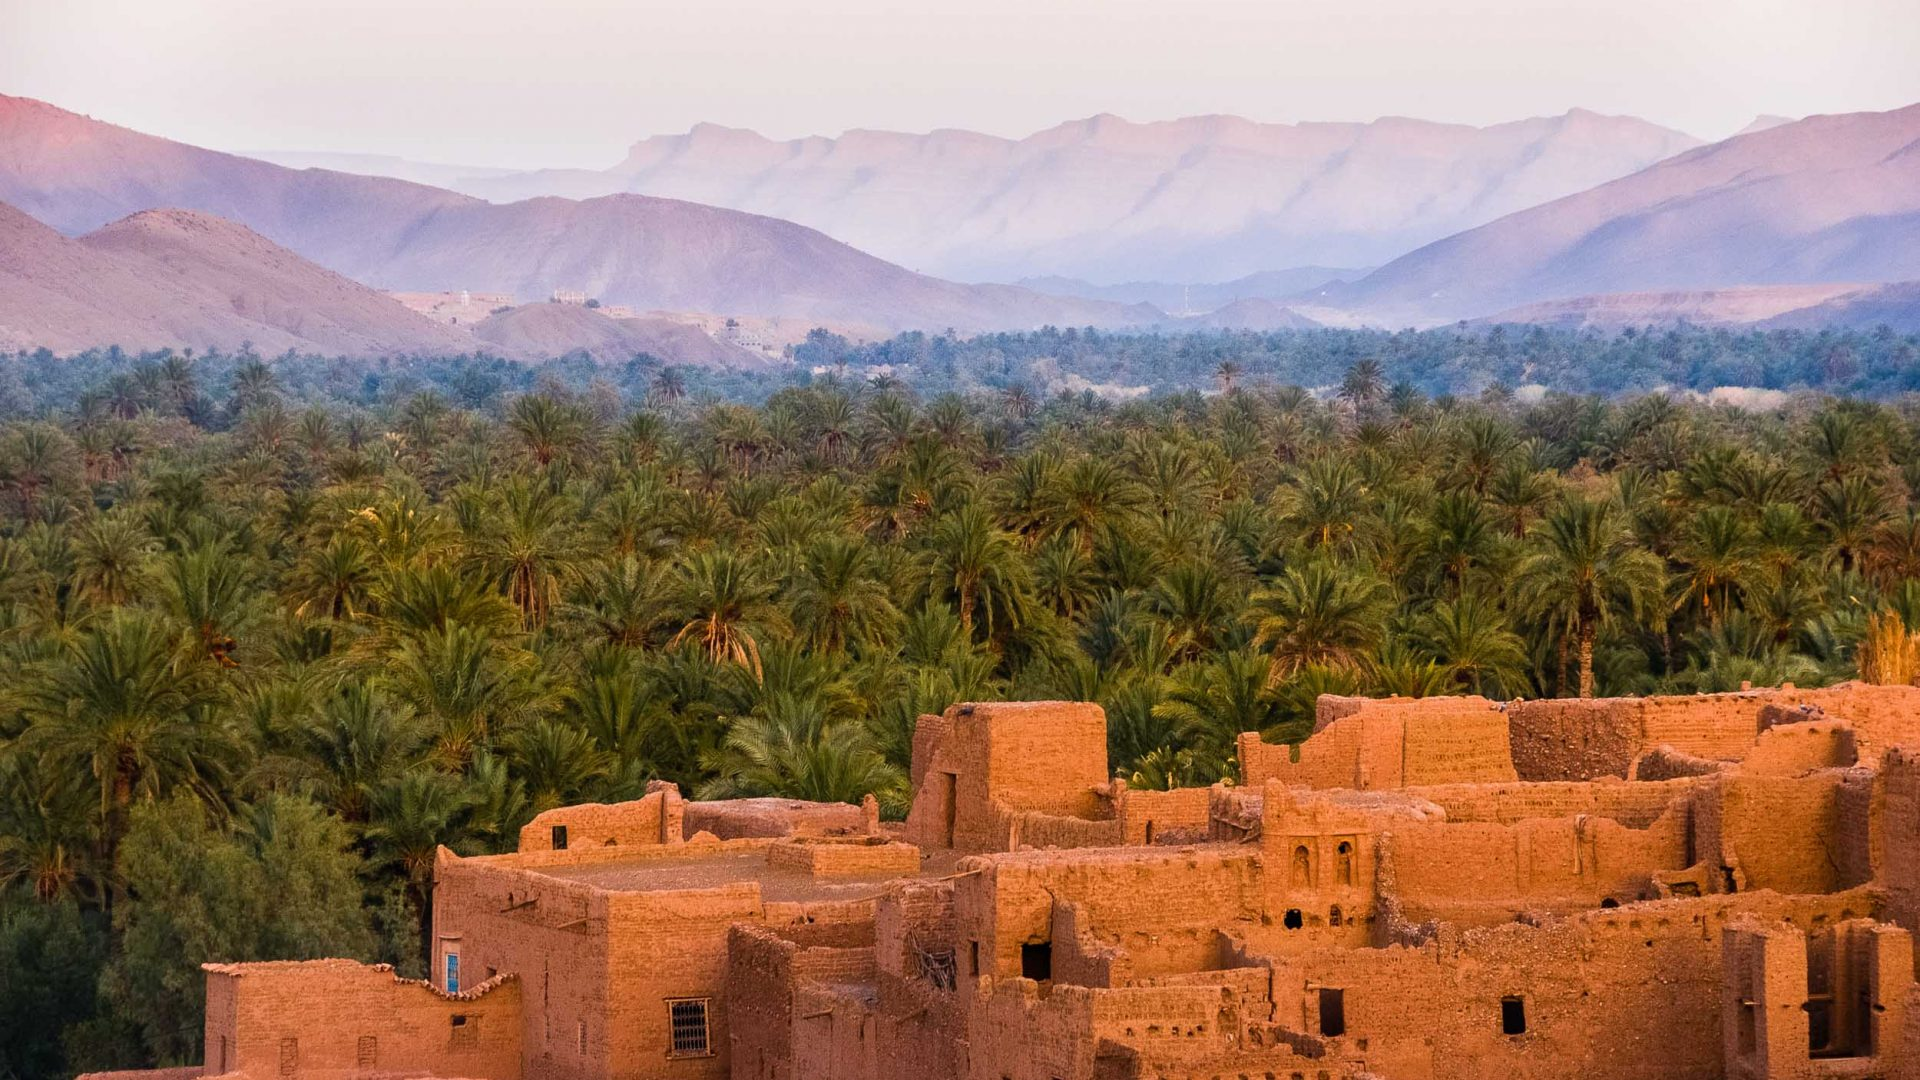 Mud-colored houses against a backdrop of mountains in Tamnougalt, Morocco.